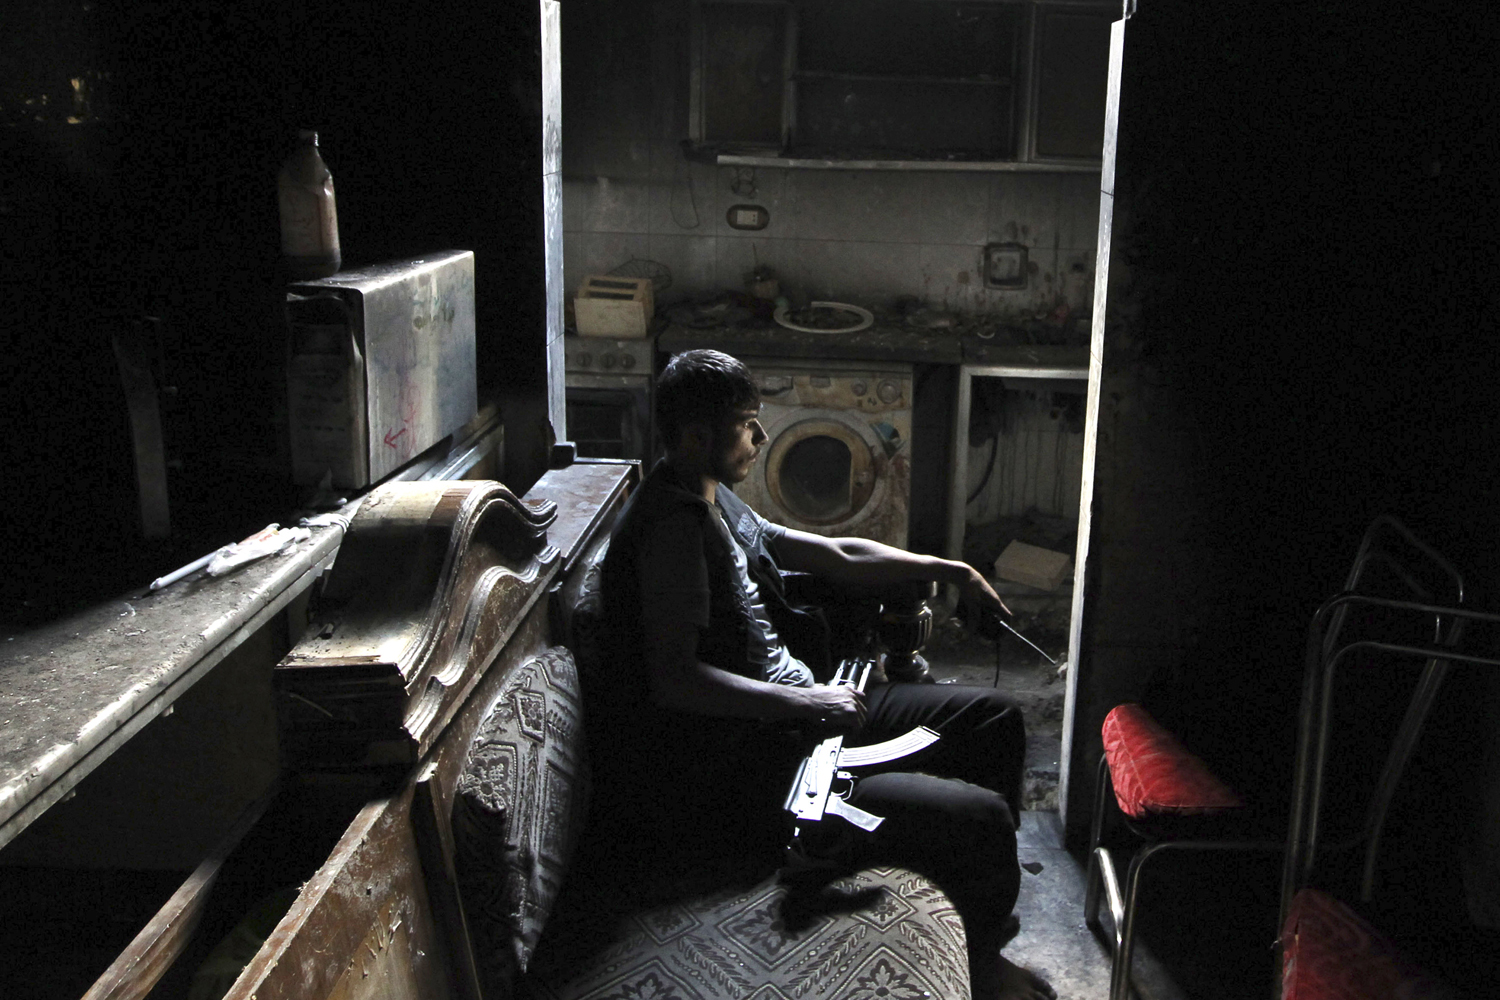 June 18, 2013. A member of the Free Syrian Army sits with his weapon inside a house in Aleppo's al-Sayyid Ali neighborhood.